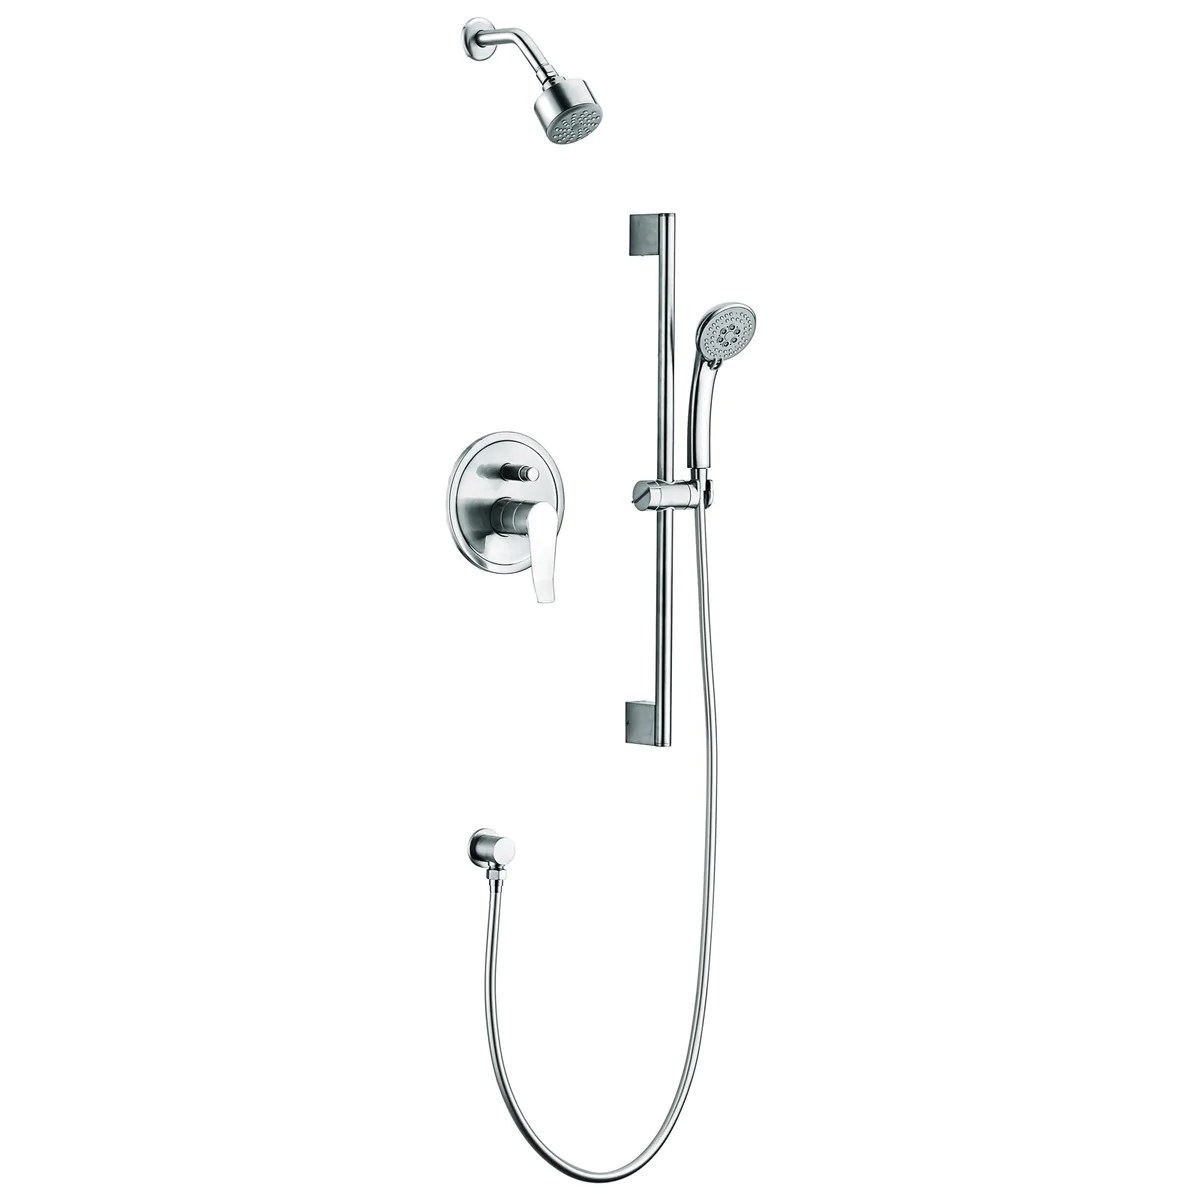 Dawn Everglades Series Shower Combo Set Wall Mounted Showerhead With Slide Bar Handheld Shower